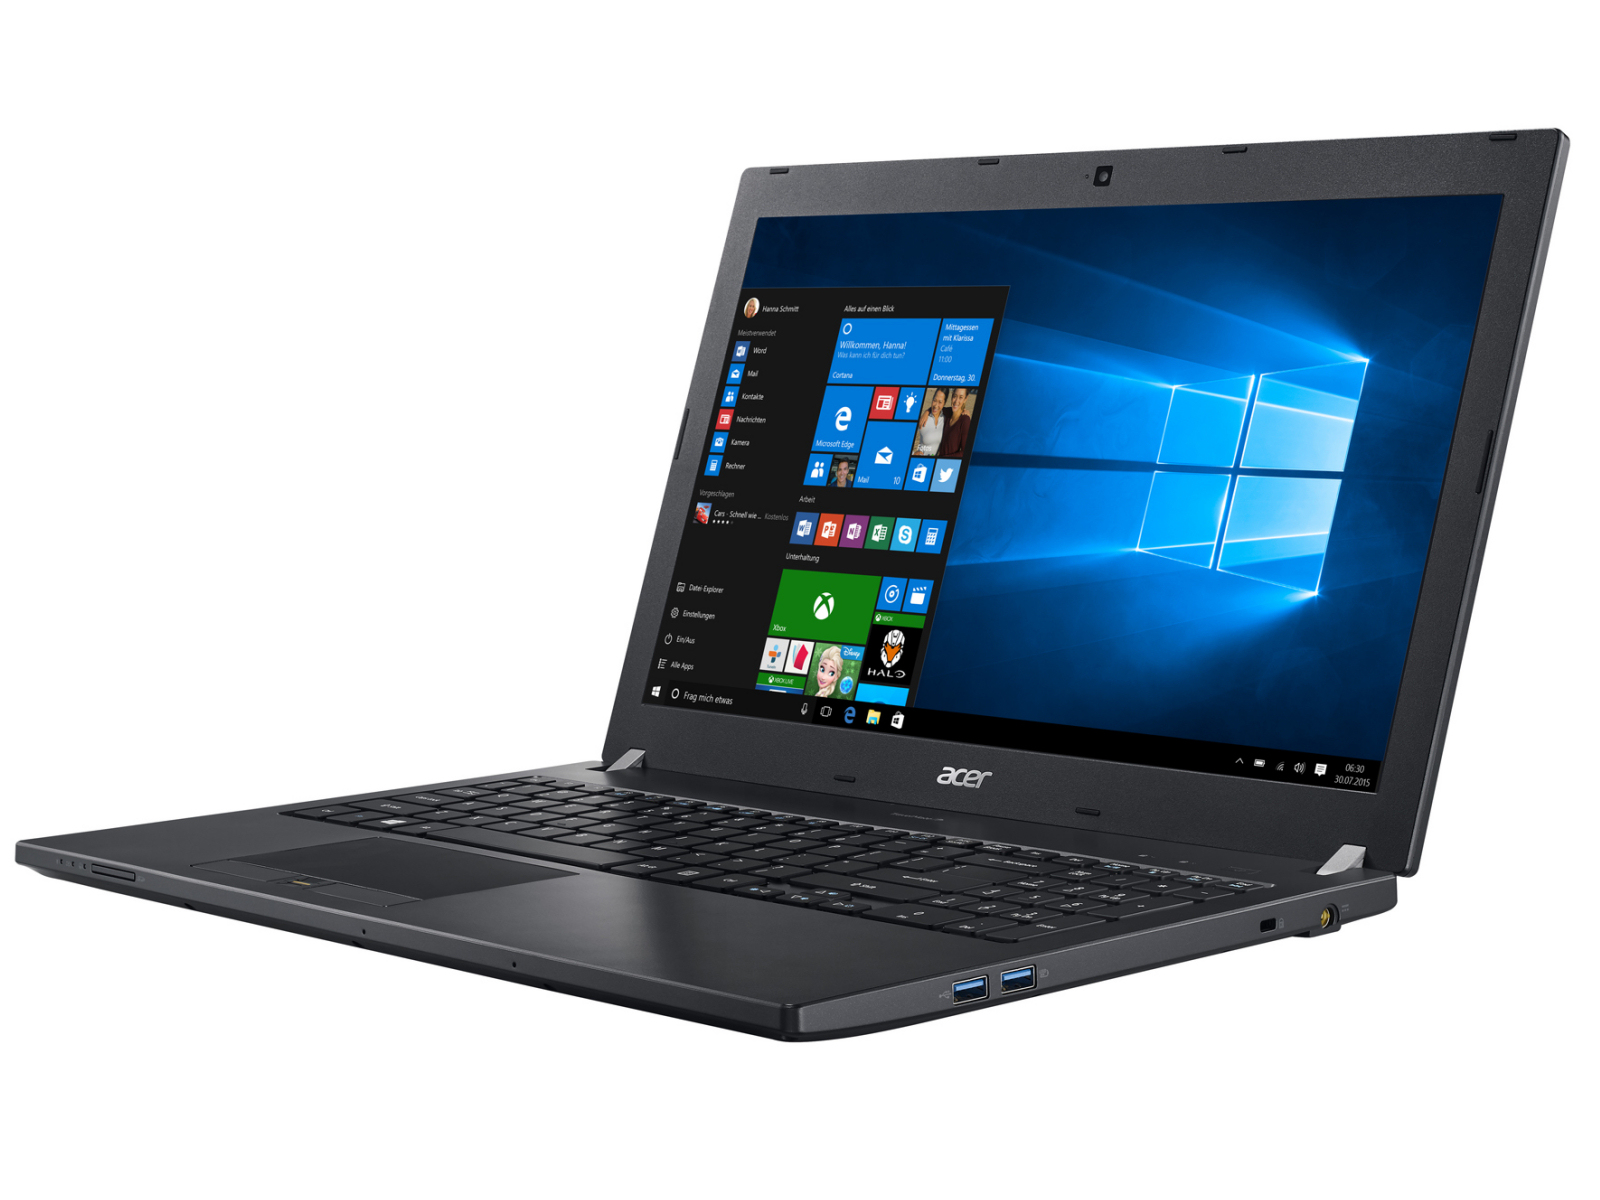 Acer TravelMate P658-MG Intel RST Drivers